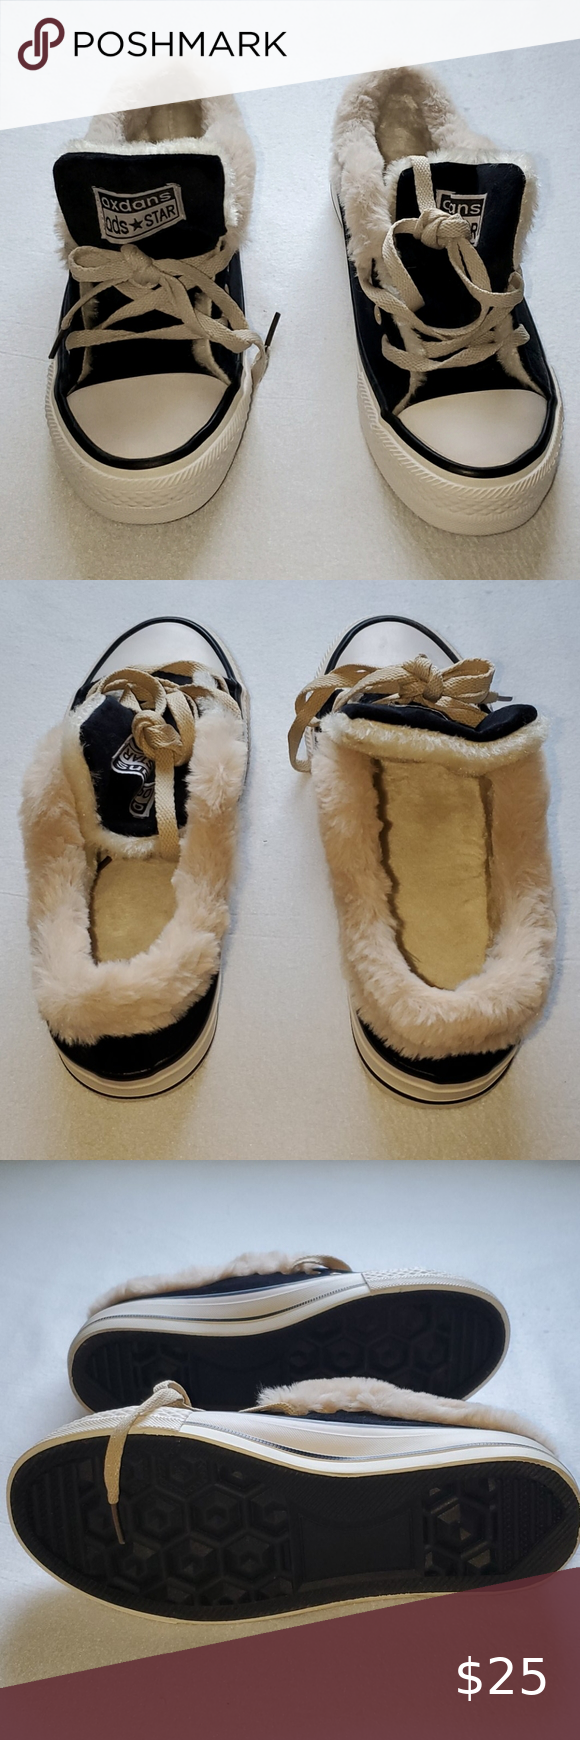 Oxdans Ods Star Black Whire Shoes With Fur Nwt Star Shoes Black And White Shoes Steve Madden Sneakers